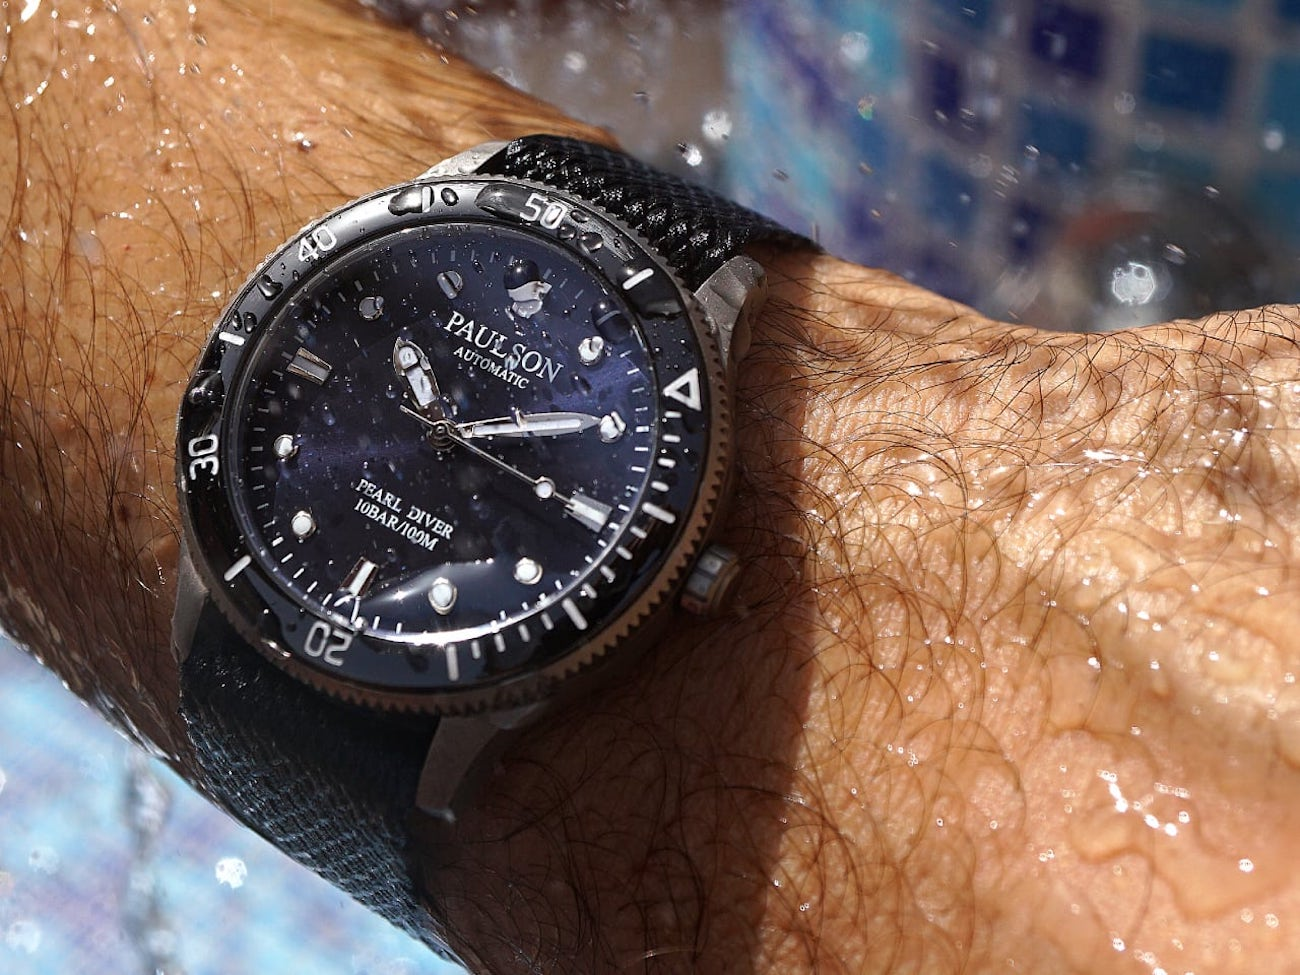 Paulson Pearl Diver Titanium Automatic Watch